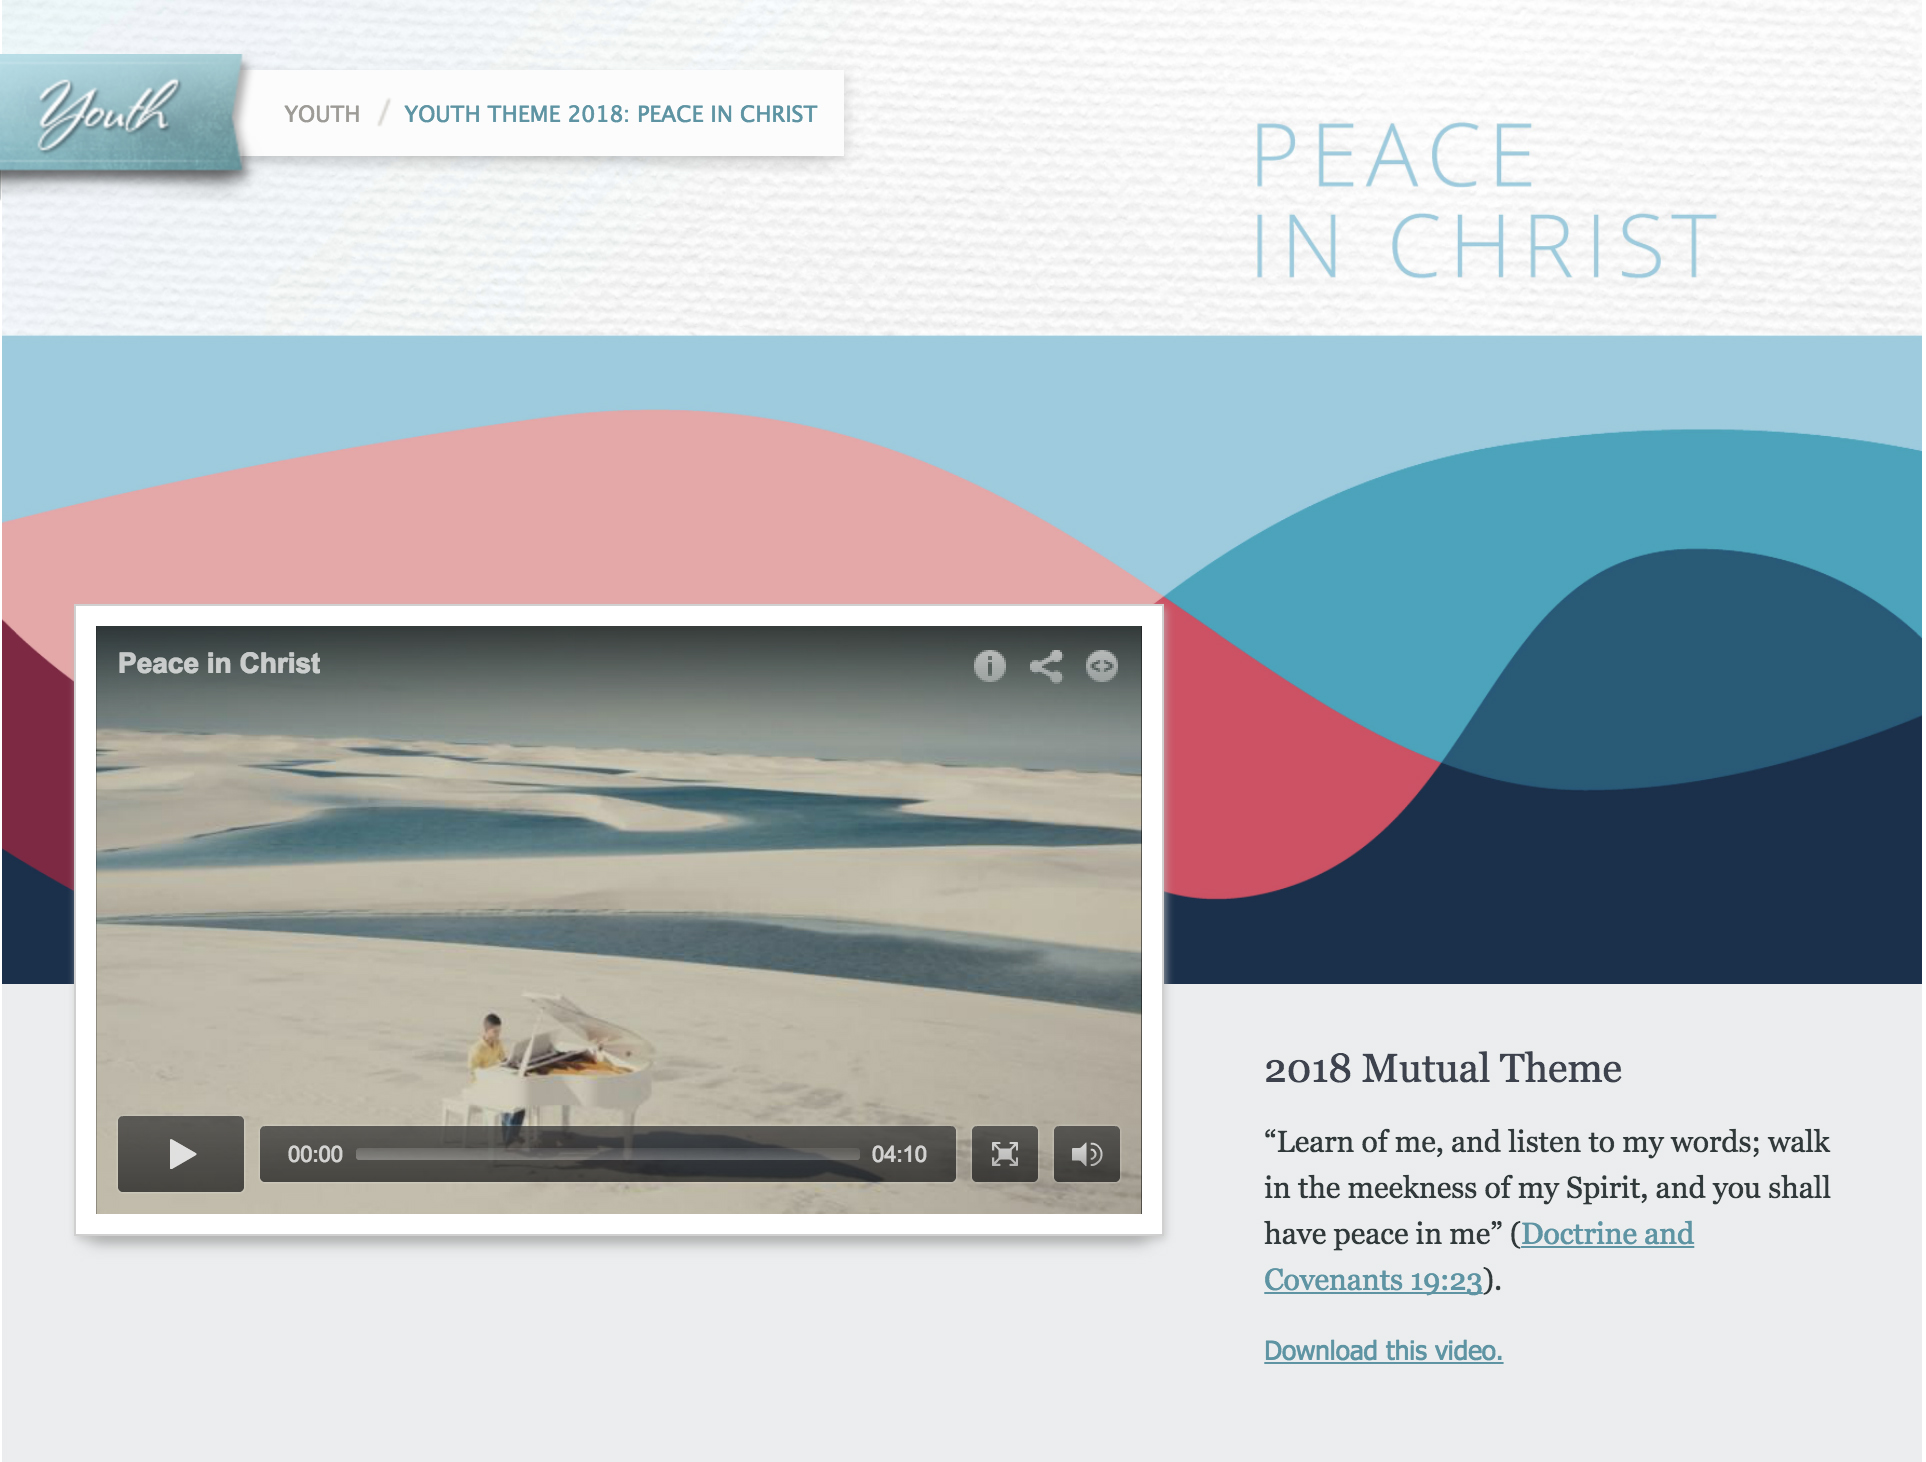 Peace in Christ': LDS youth leaders discuss 2018 theme